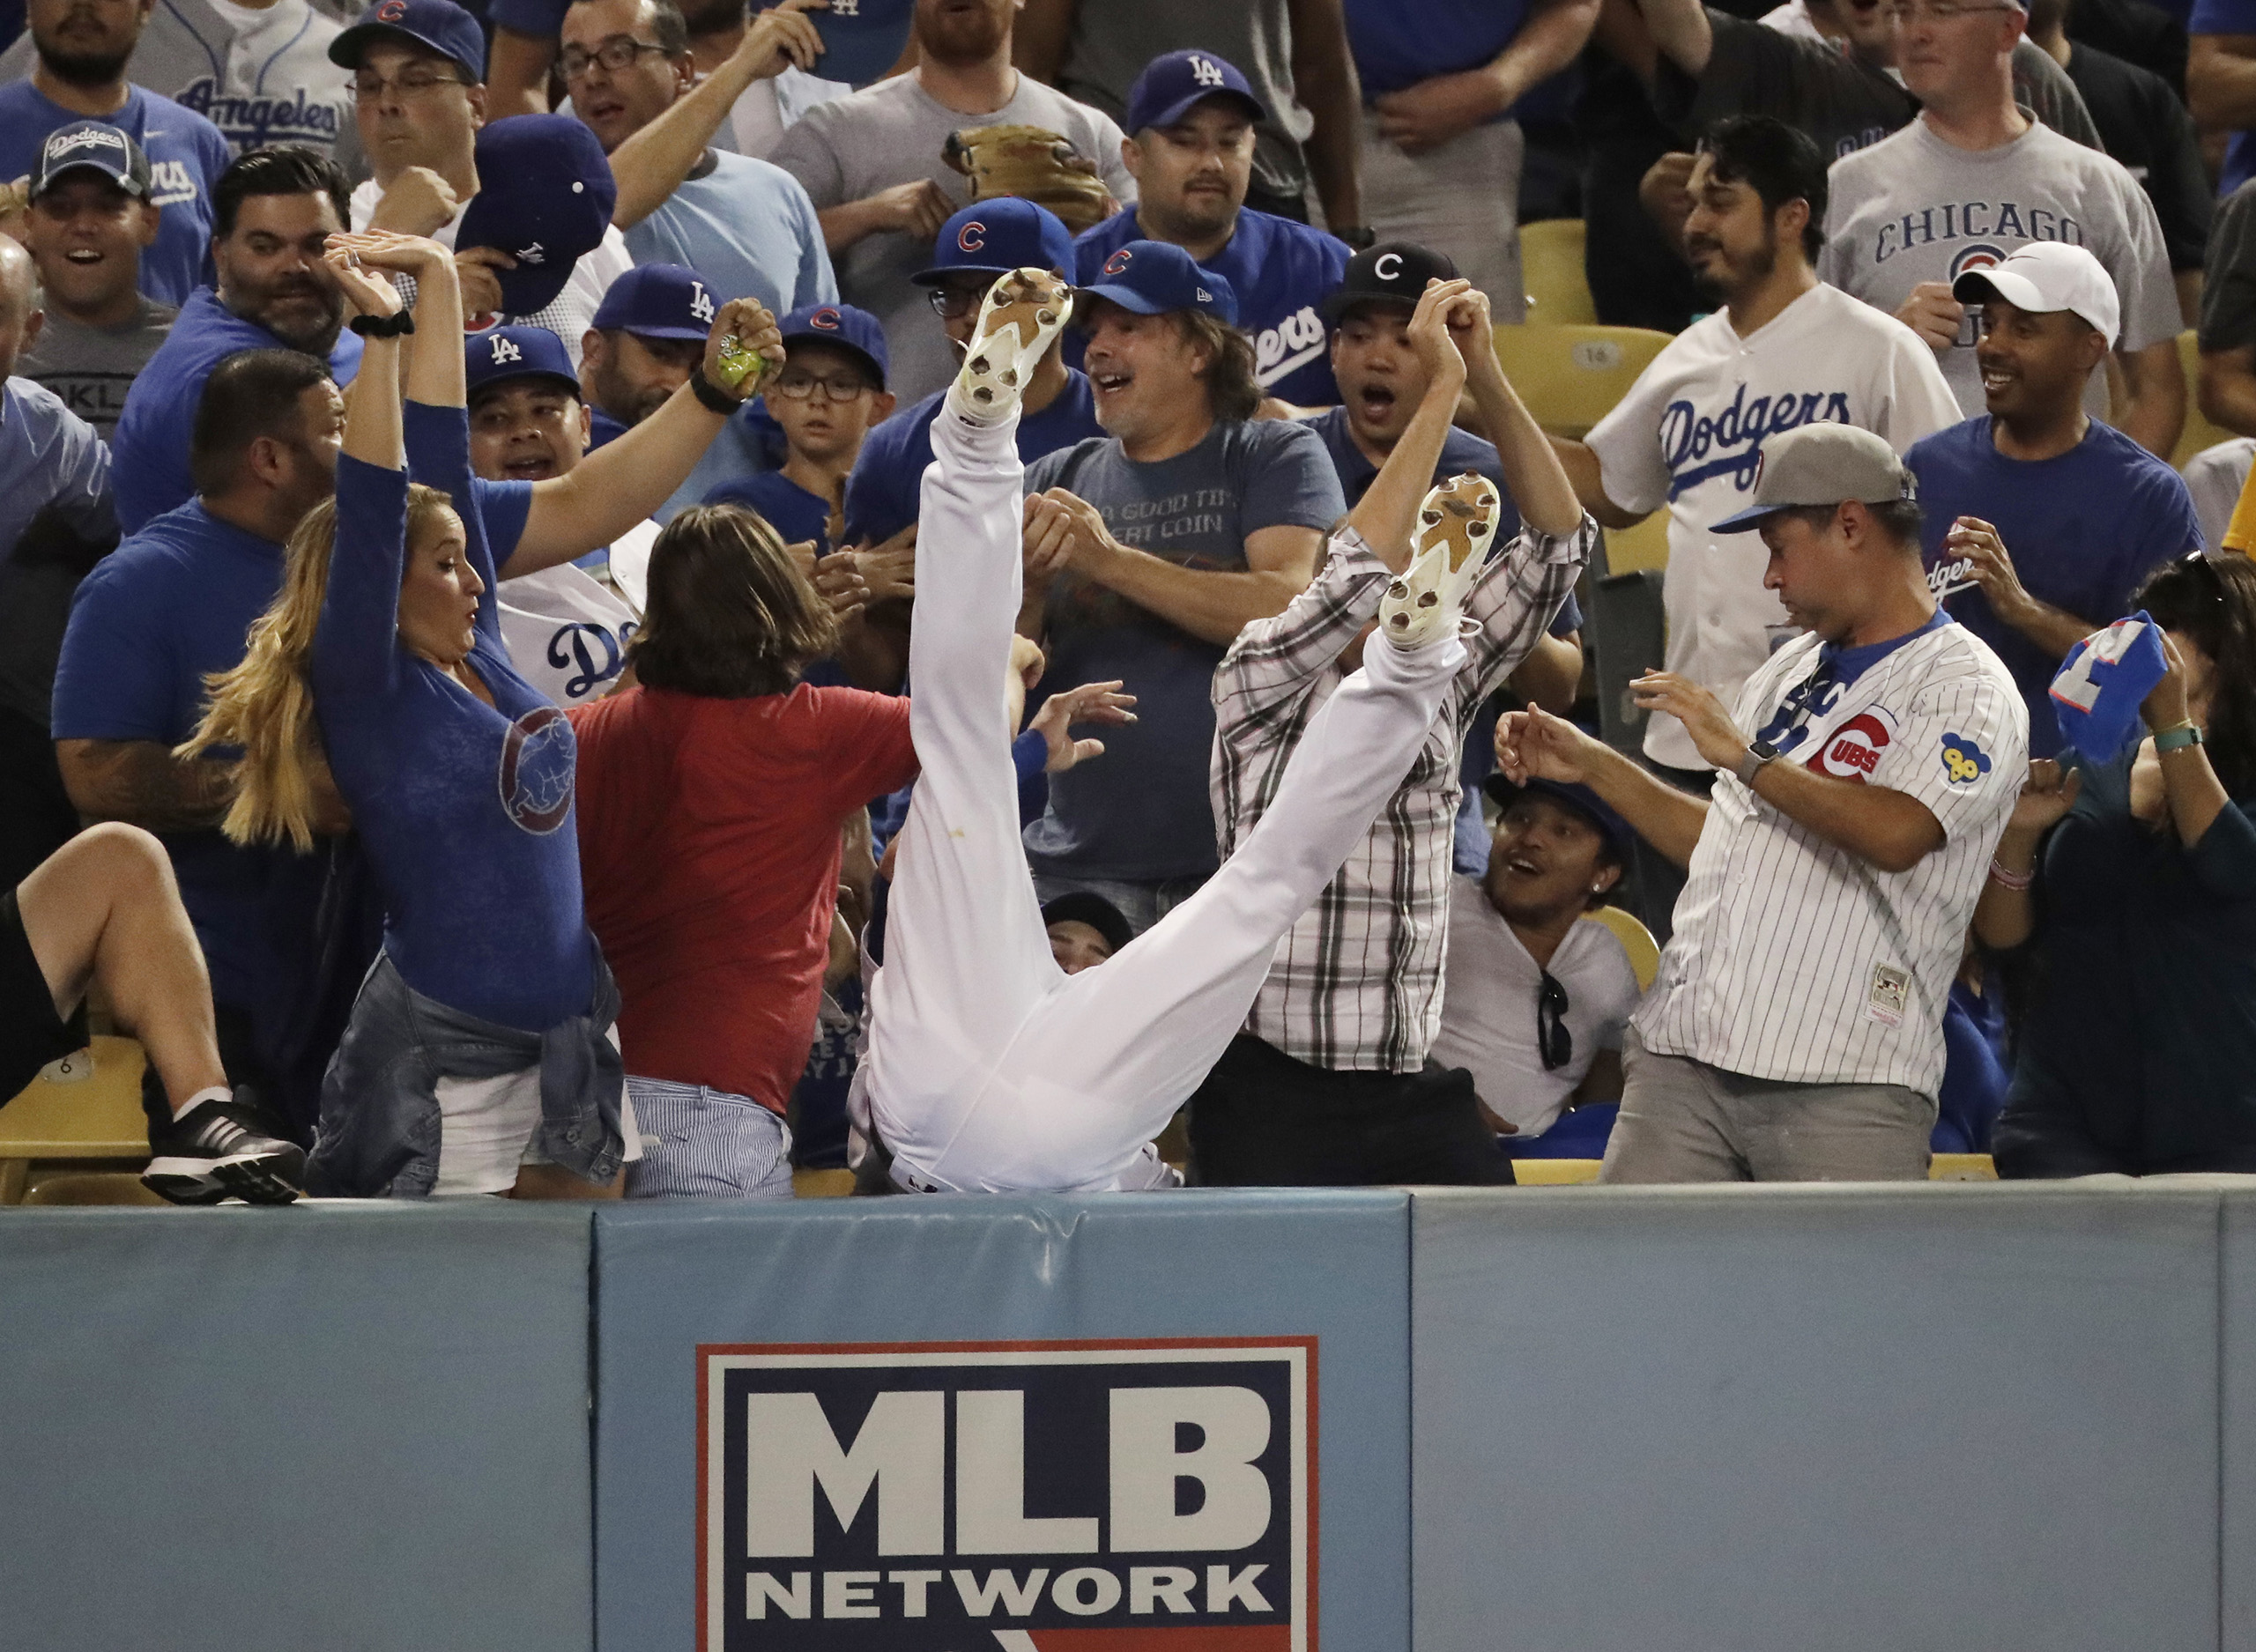 Los Angeles Dodgers right fielder Josh Reddick can't catch a foul ball hit by Chicago Cubs' Ben Zobrist during the fifth inning of Game 4 of the National League baseball championship series, on Oct. 19, 2016, in Los Angeles.